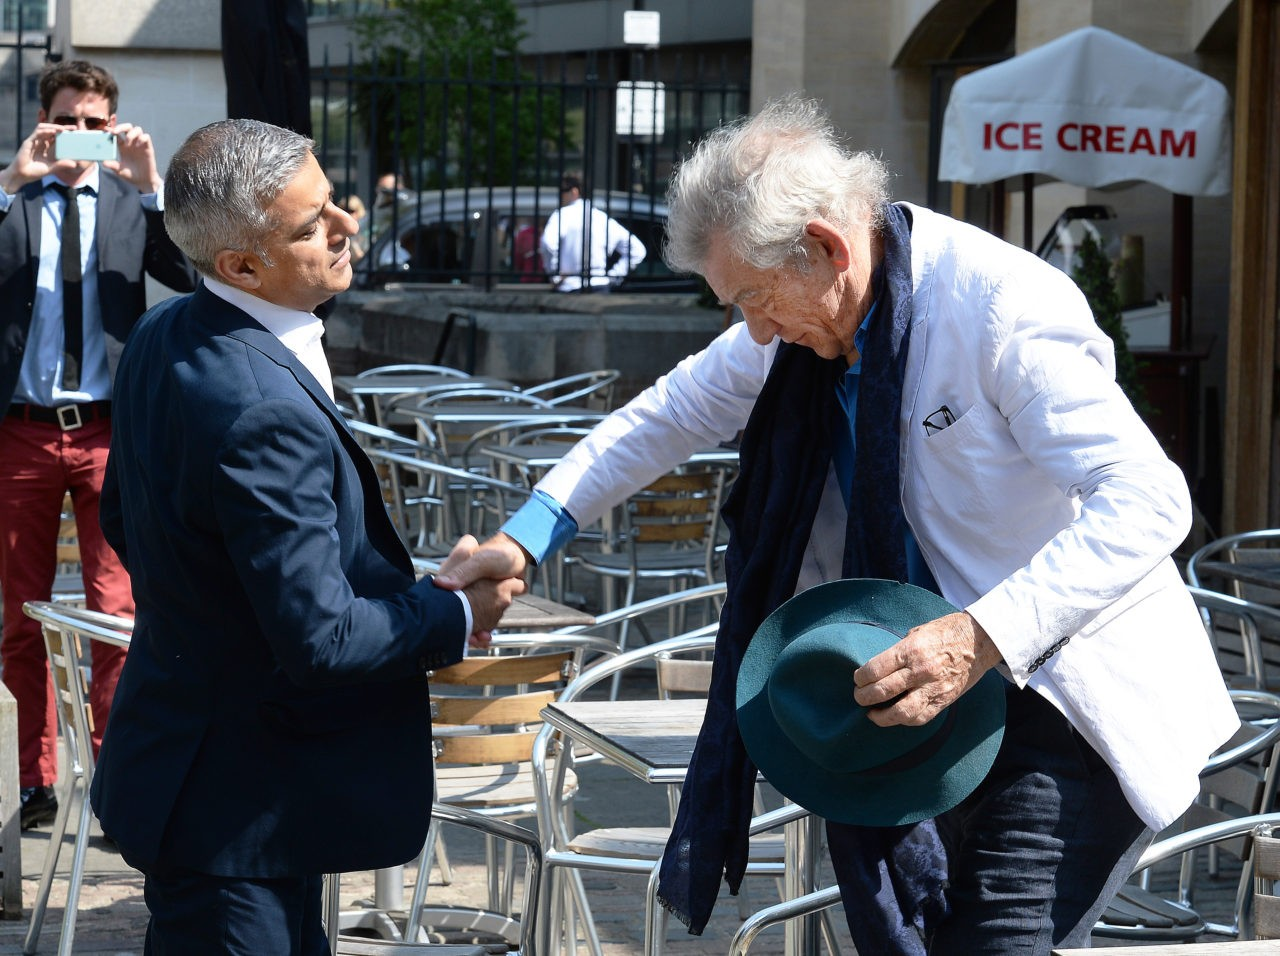 LONDON, ENGLAND - MAY 07:  Sir Ian McKellen greets the newly elected Mayor of London Sadiq Khan ahead of his signing ceremony Southwark Cathedral on May 7, 2016 in London, England.  Khan, the Labour MP for Tooting, will be sworn in as Mayor of London at a multi-faith service at Southwark Cathedral today. After months of campaigning Mr Khan won the London mayoral race with 56.8 percent of the vote beating Conservative Party candidate Zac Goldsmith into second place.  (Photo by John Stillwell - WPA Pool /Getty Images)